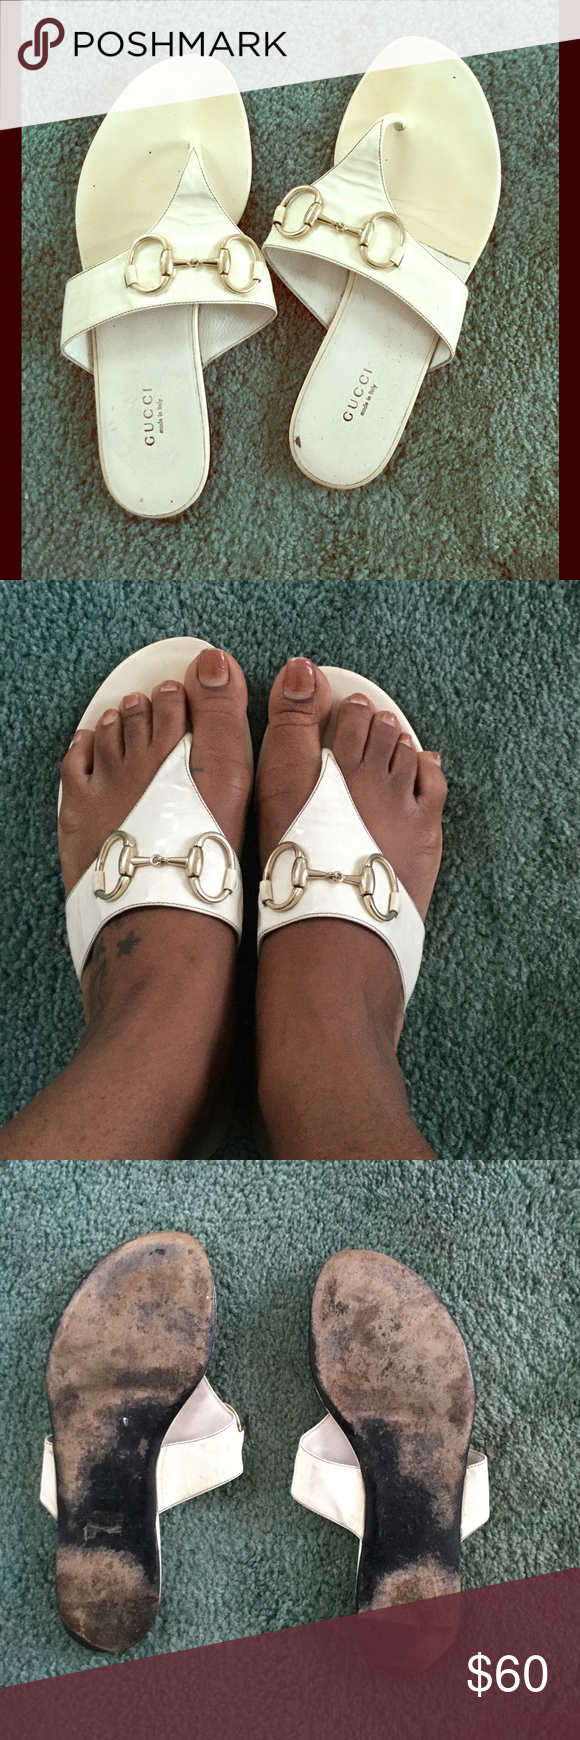 eea4e78b8d5 AUTHENTIC GUCCI Sand Pelle S Cuoio Sandals Authentic Woman s Gucci Sandals  with classic gold buckle. Color Great white